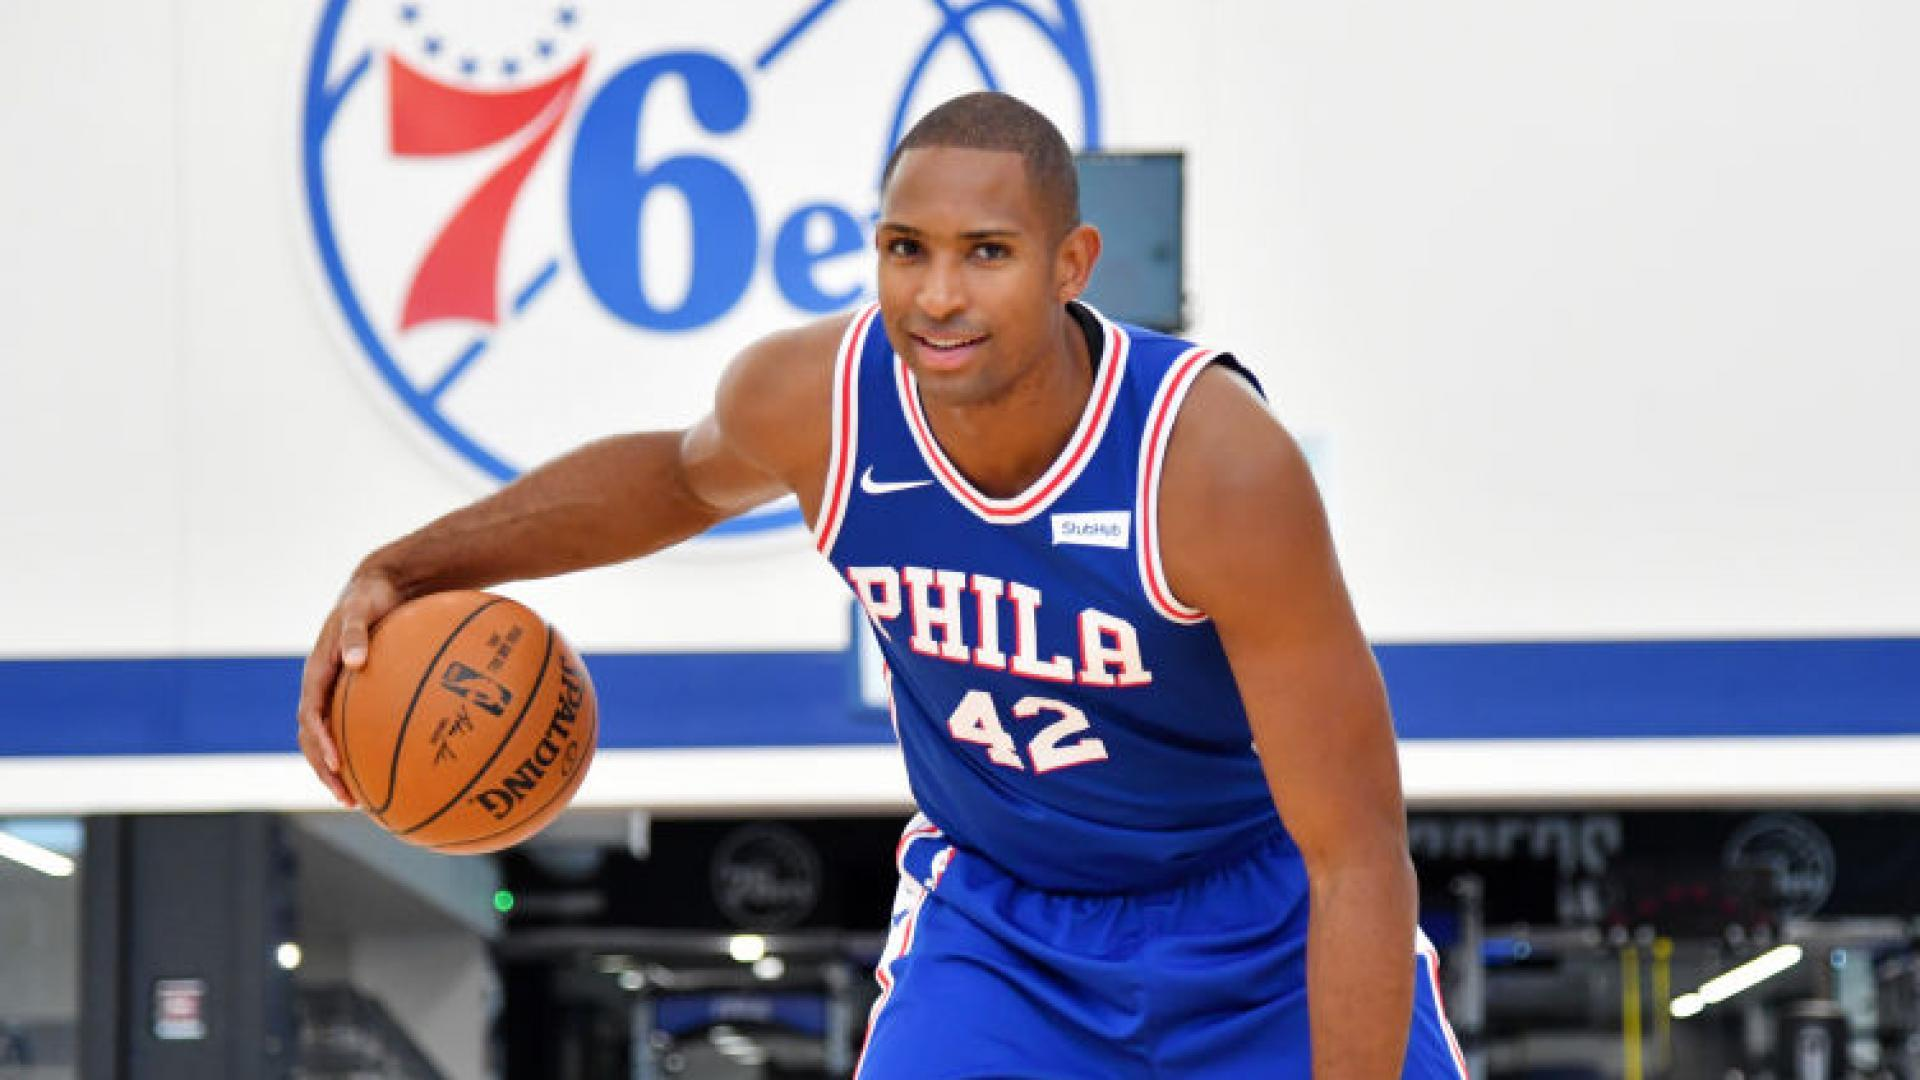 SOURCE SPORTS: 76ers' Al Horford Leads Latest NBA Together PSA With UnidosUS in Response to COVID-19 Pandemic